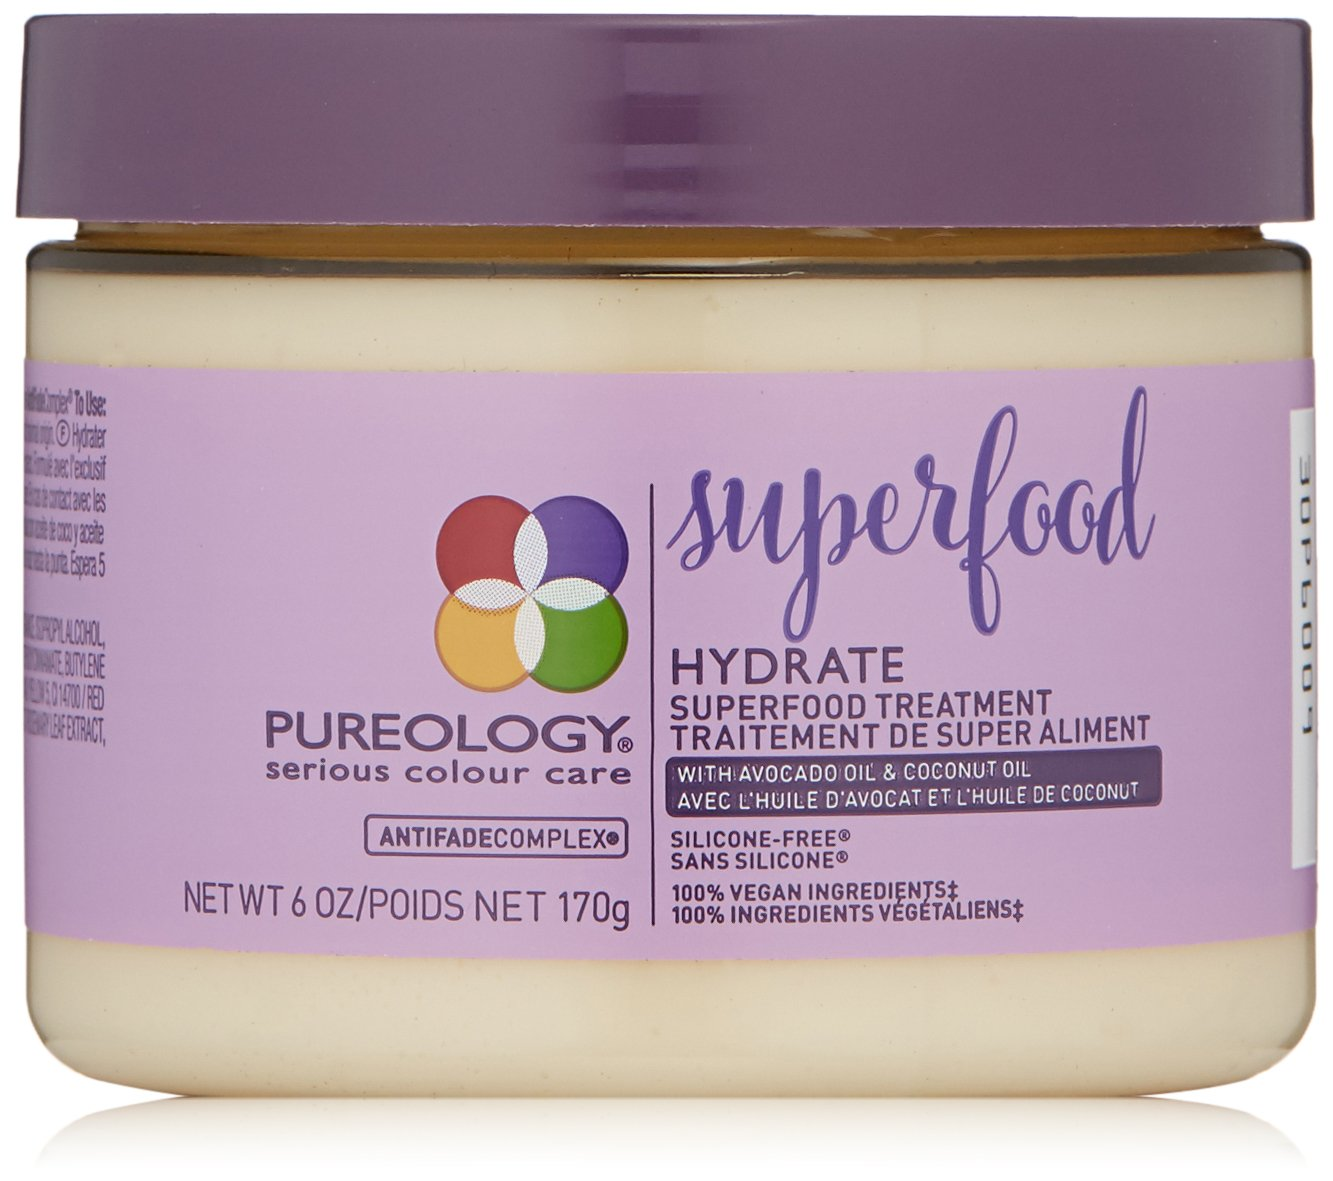 Hydrate by Pureology Superfood Treatment Mask 170g